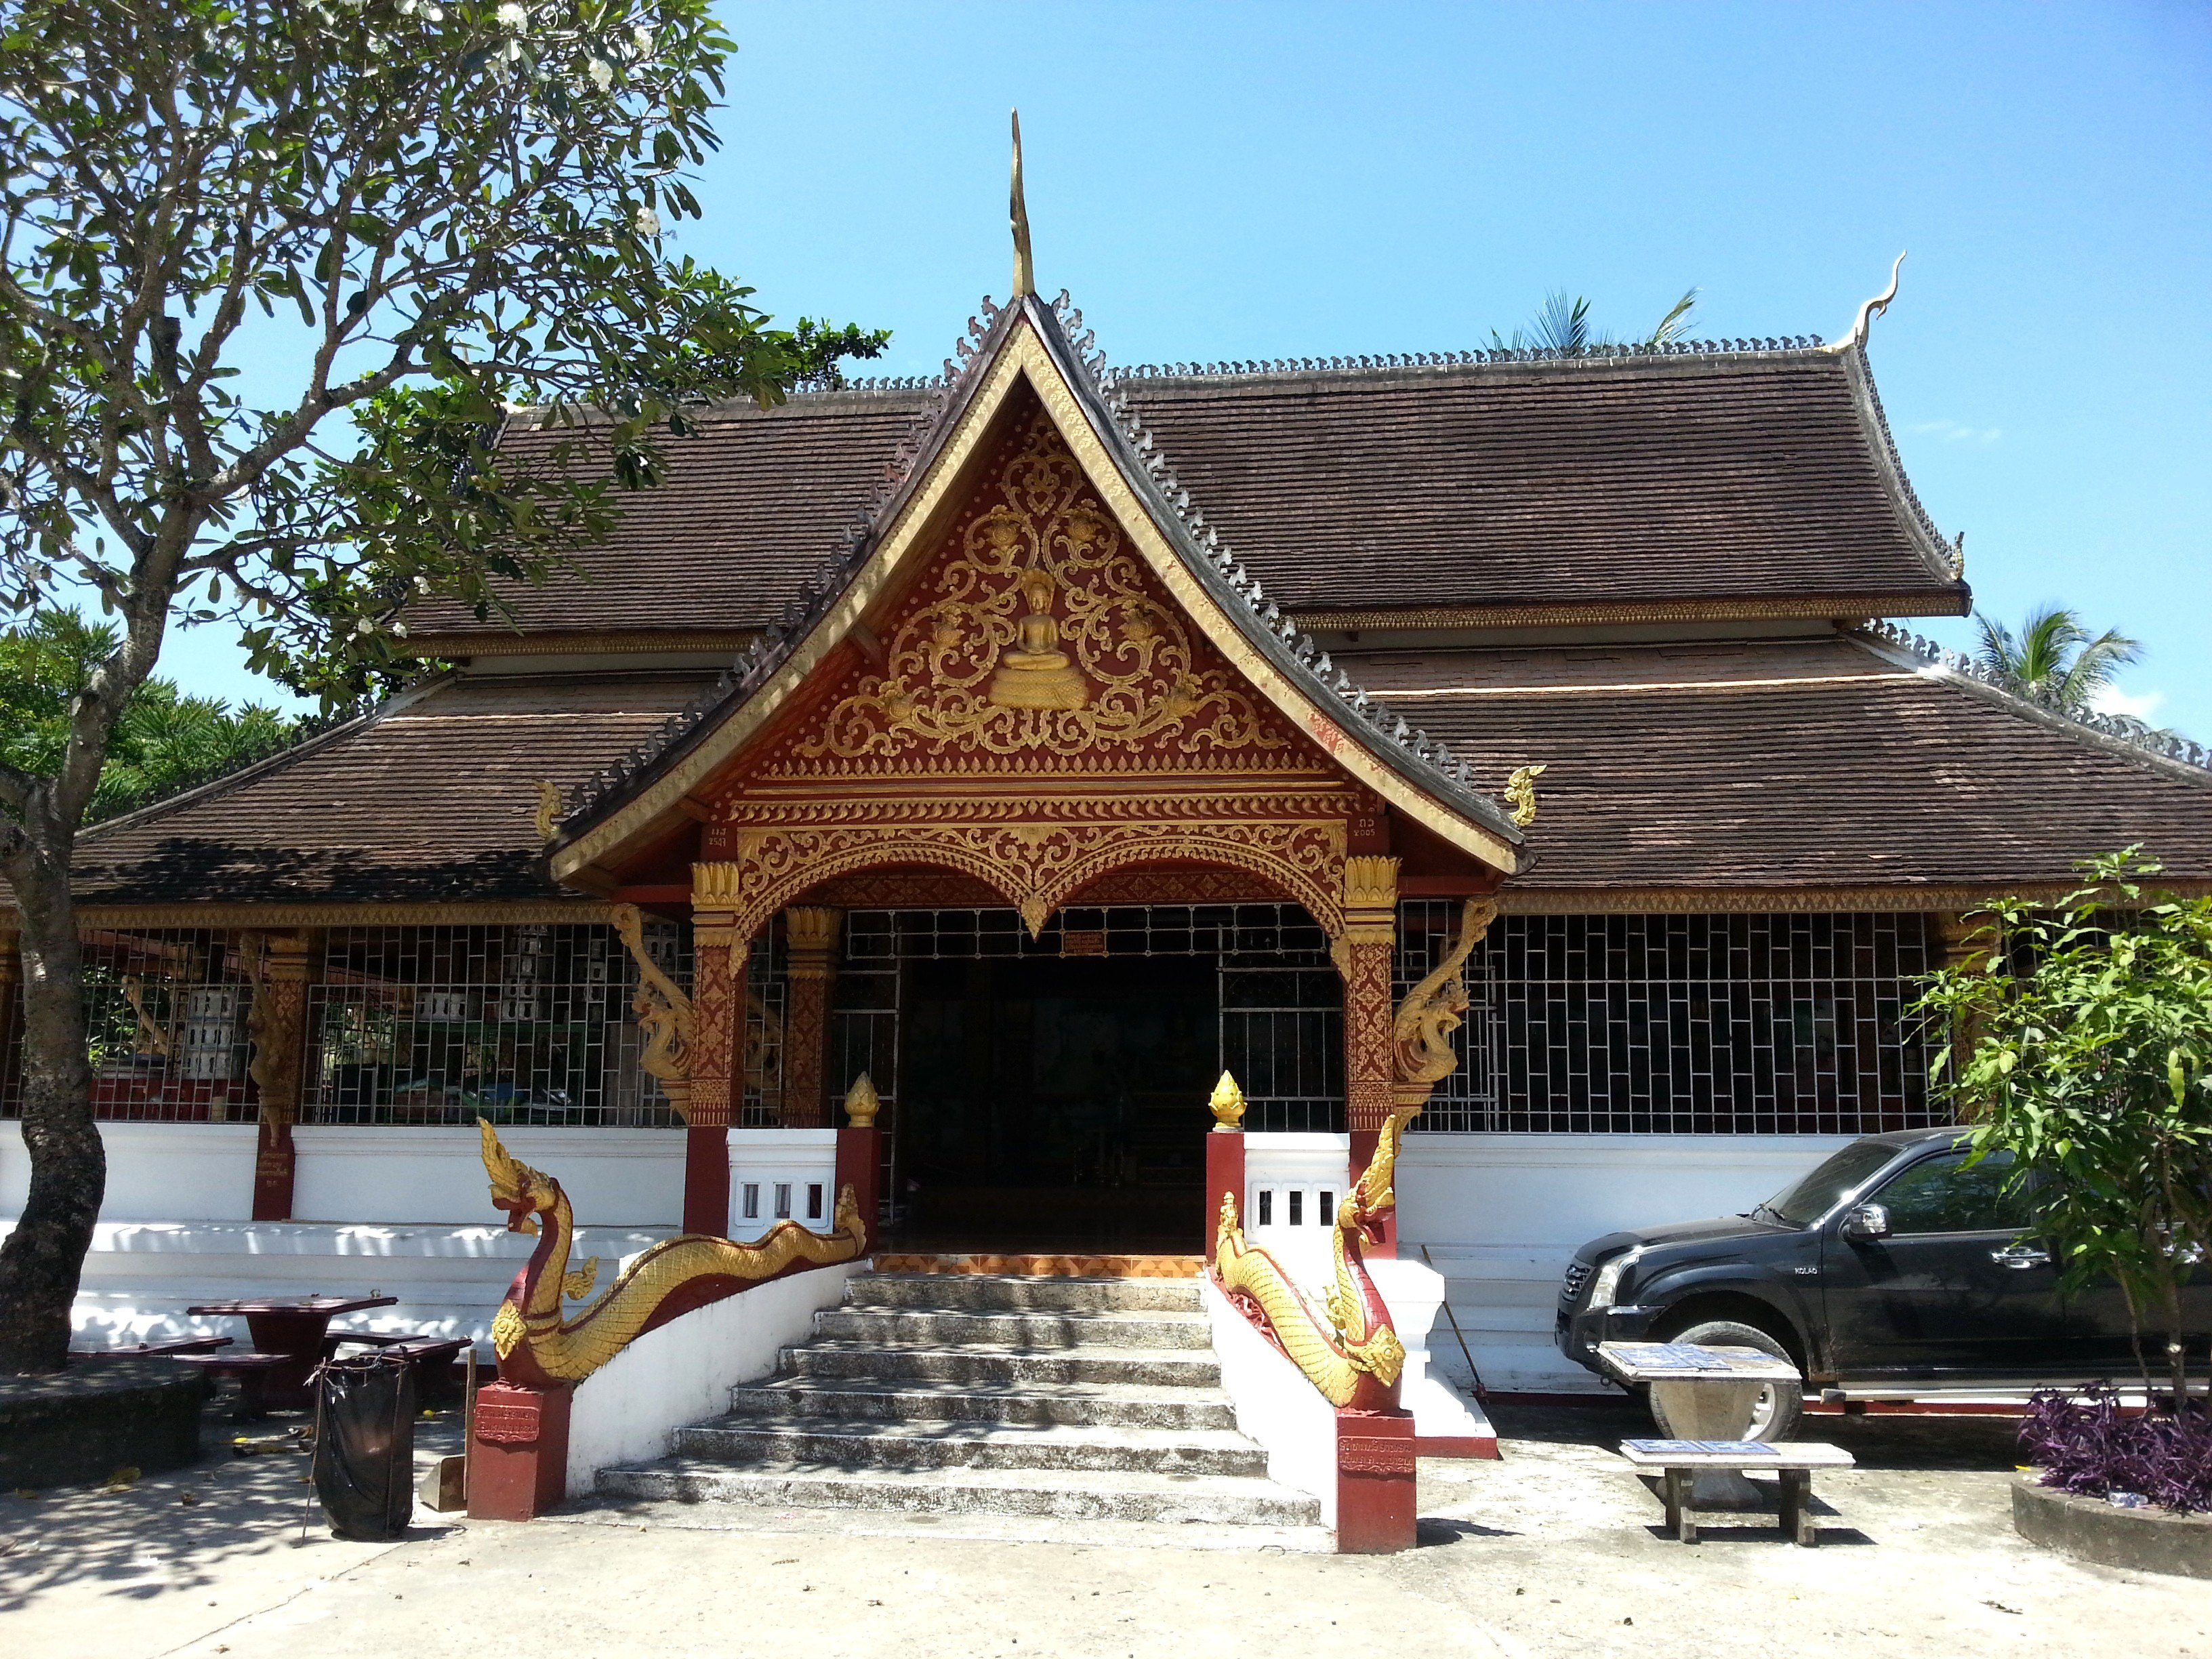 One of the many buildings at Wat Manorom